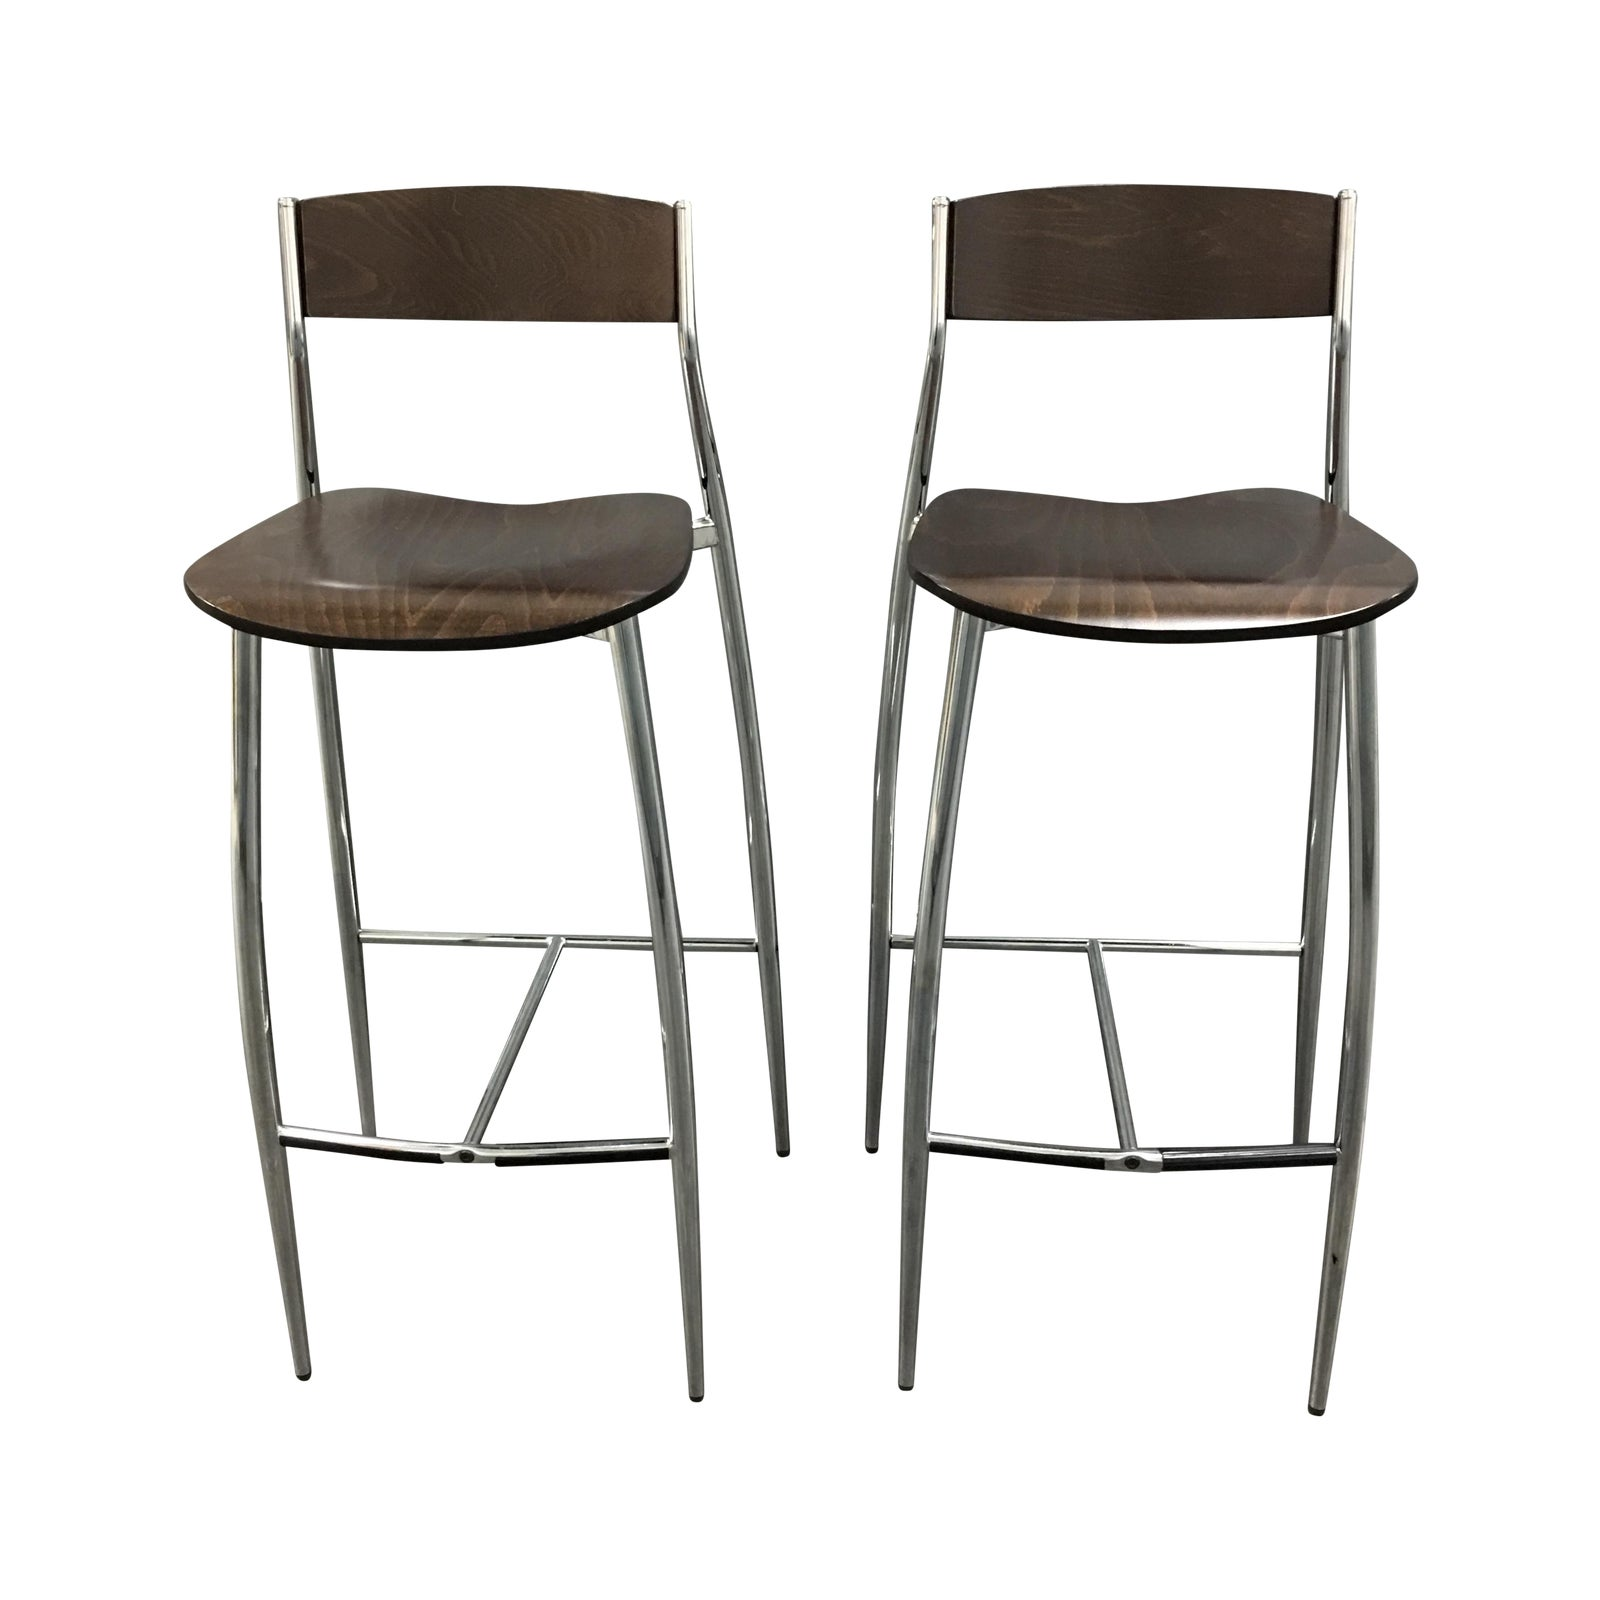 Pleasant Design Within Reach Baba Bar Stools A Pair Gmtry Best Dining Table And Chair Ideas Images Gmtryco